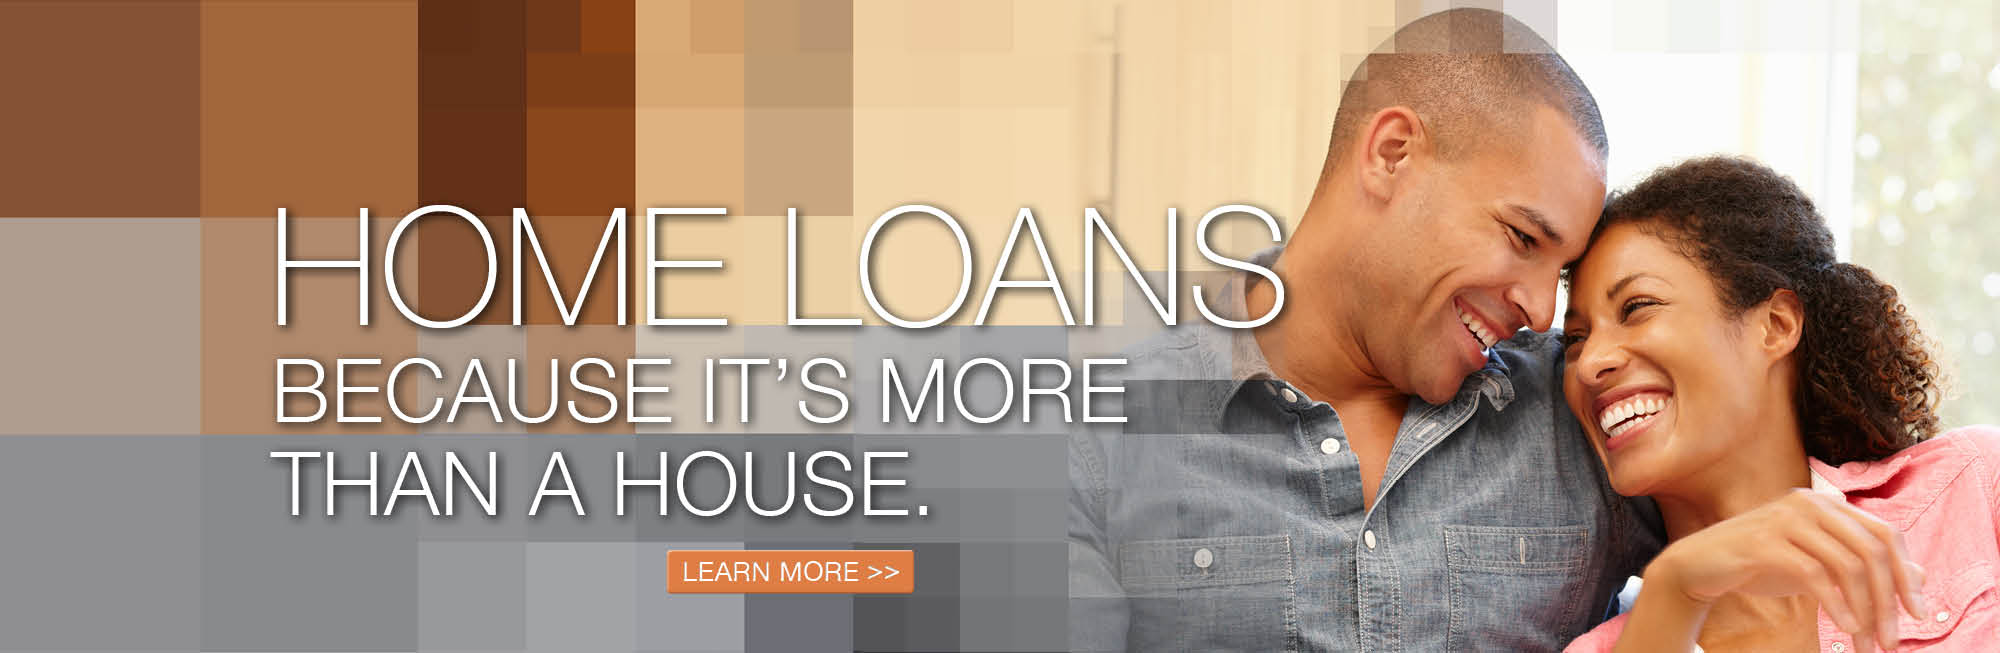 Home Loans, because it's more than a house. Click to learn more.